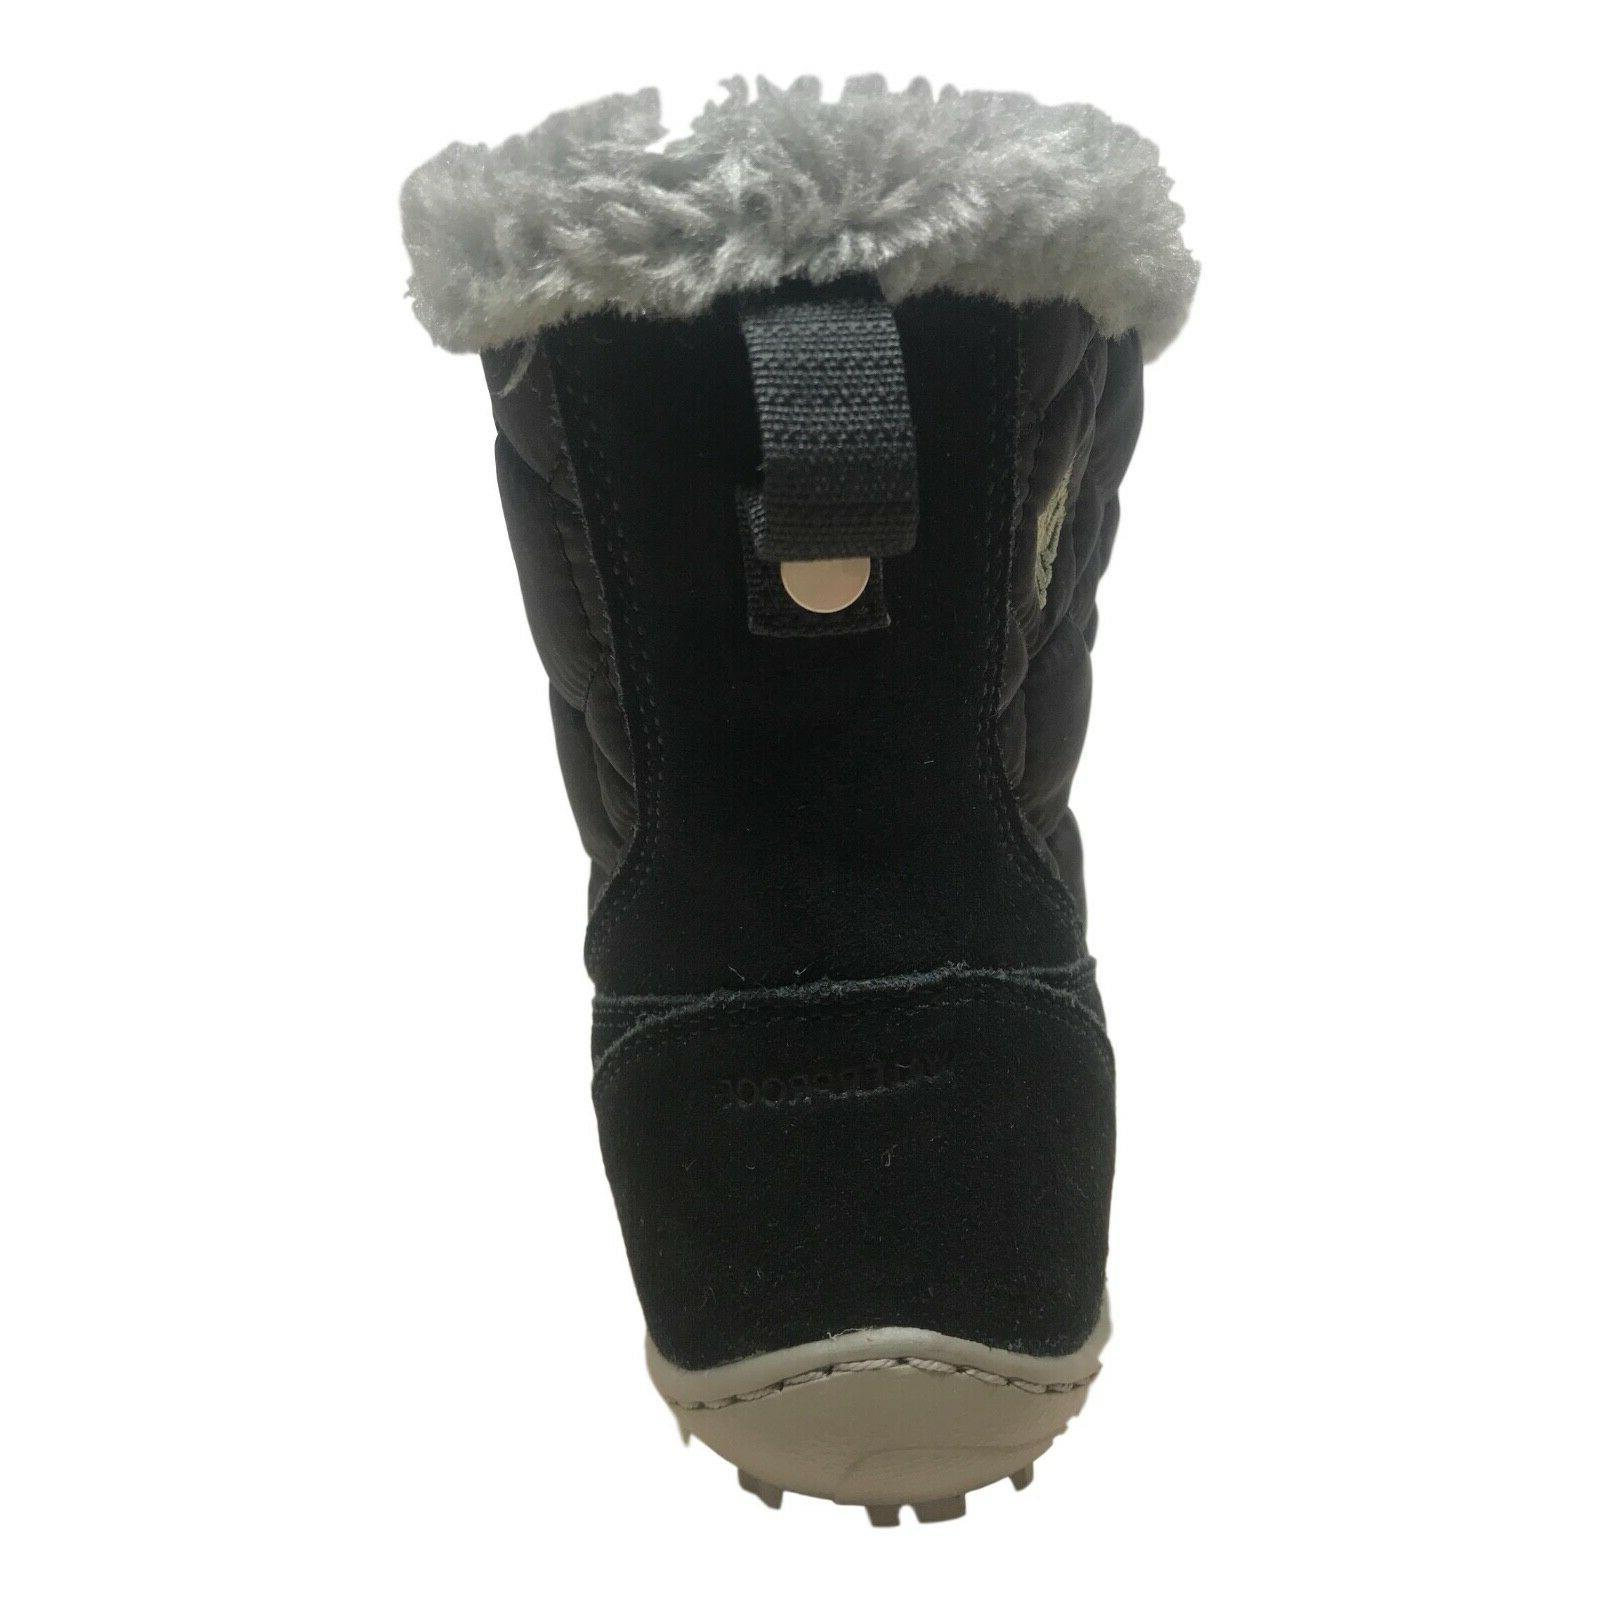 New Columbia Powder Shorty waterproof winter Black